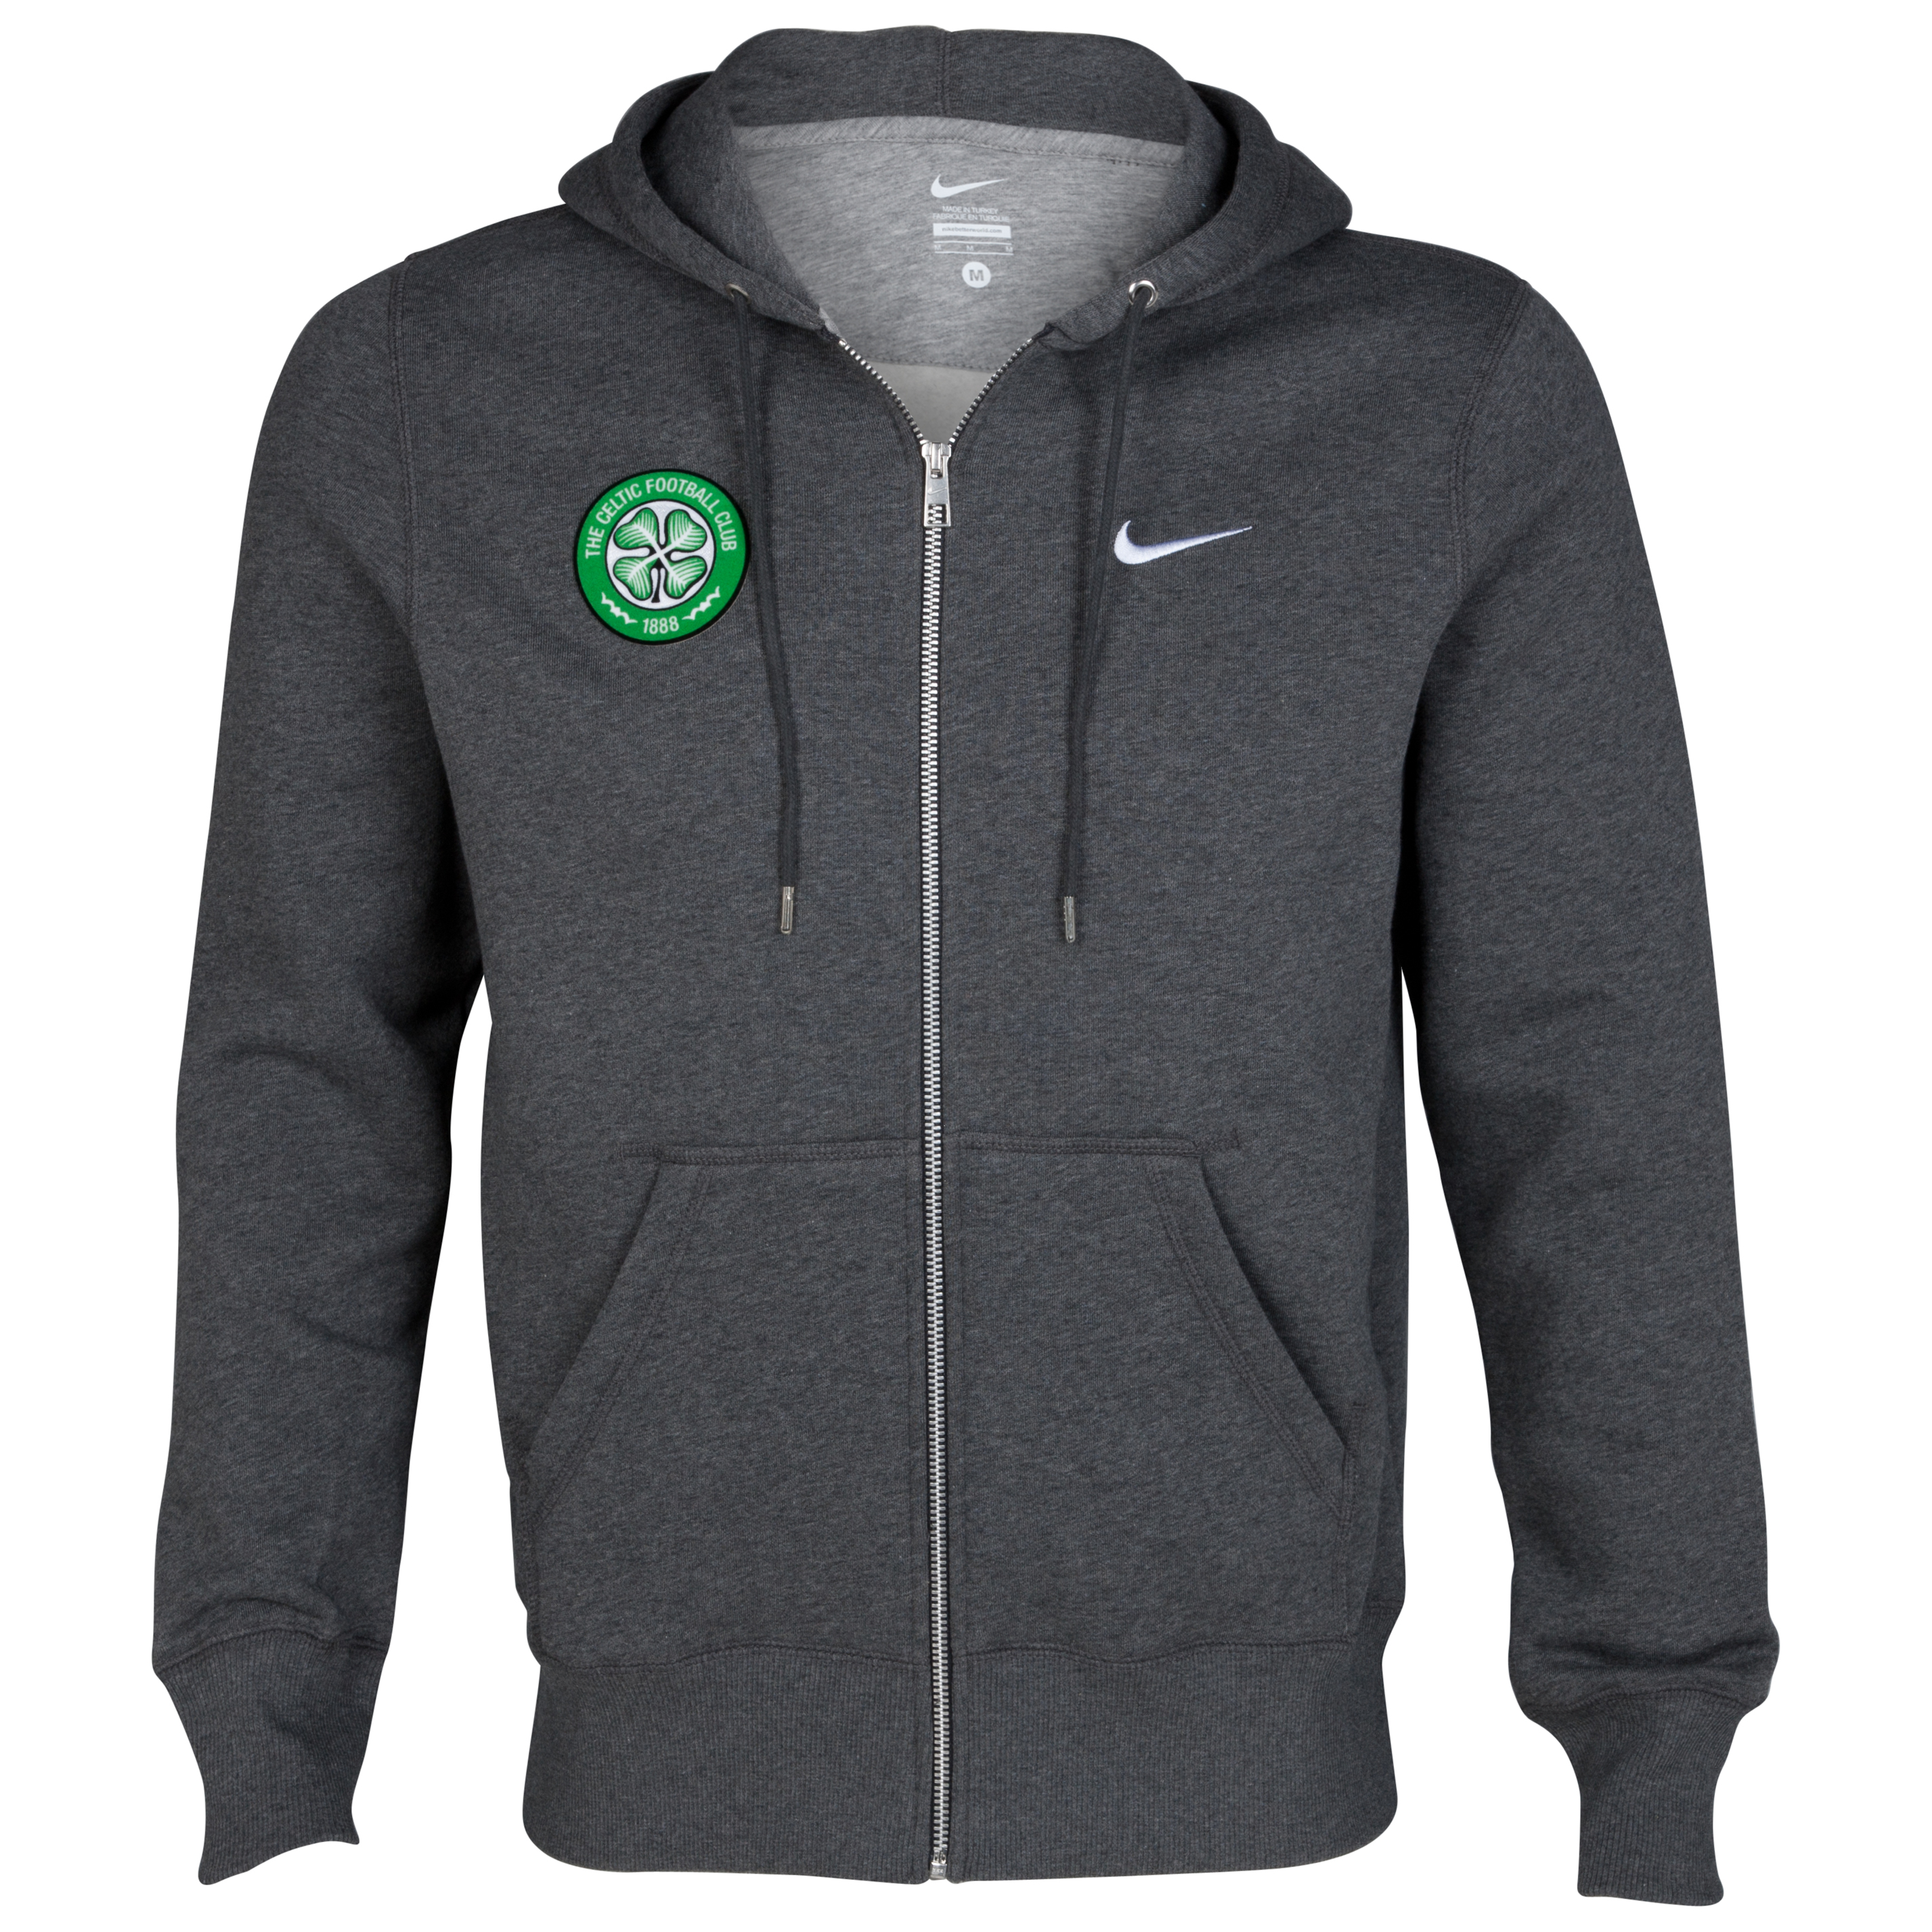 Celtic Classic Fleece Full Zip Hoodie - Charcoal Heather/Dark Grey Heather/White